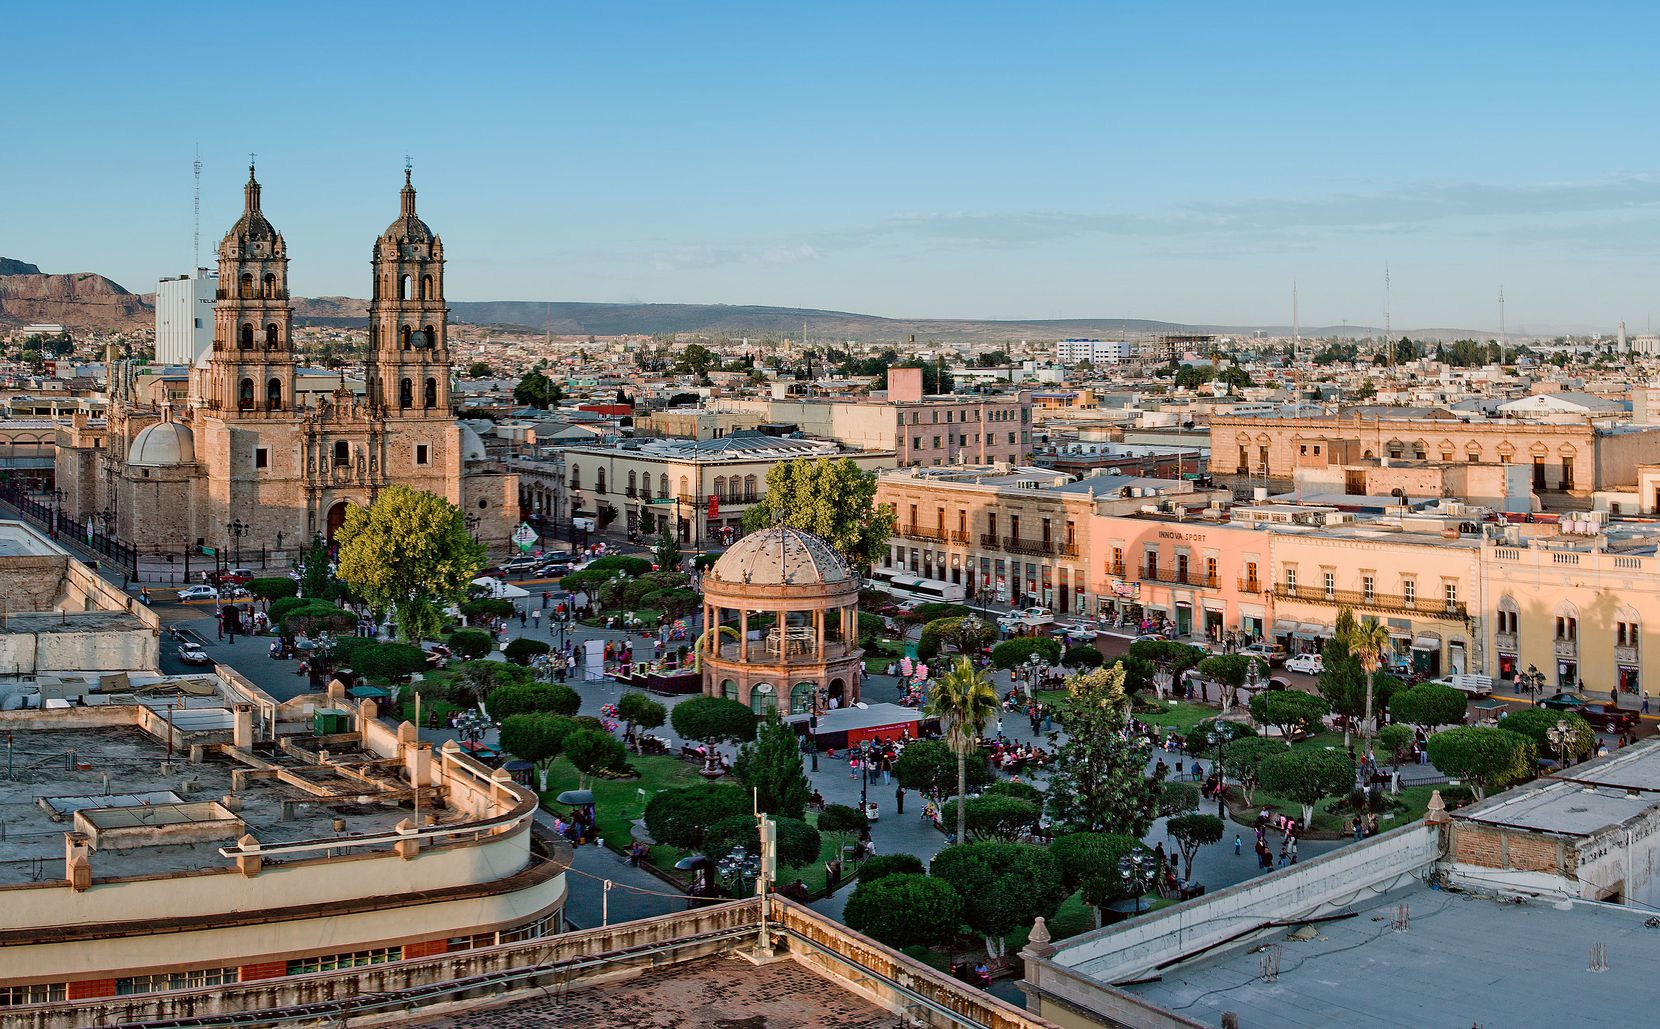 Durango is the capital city of its namesake state in central Mexico.